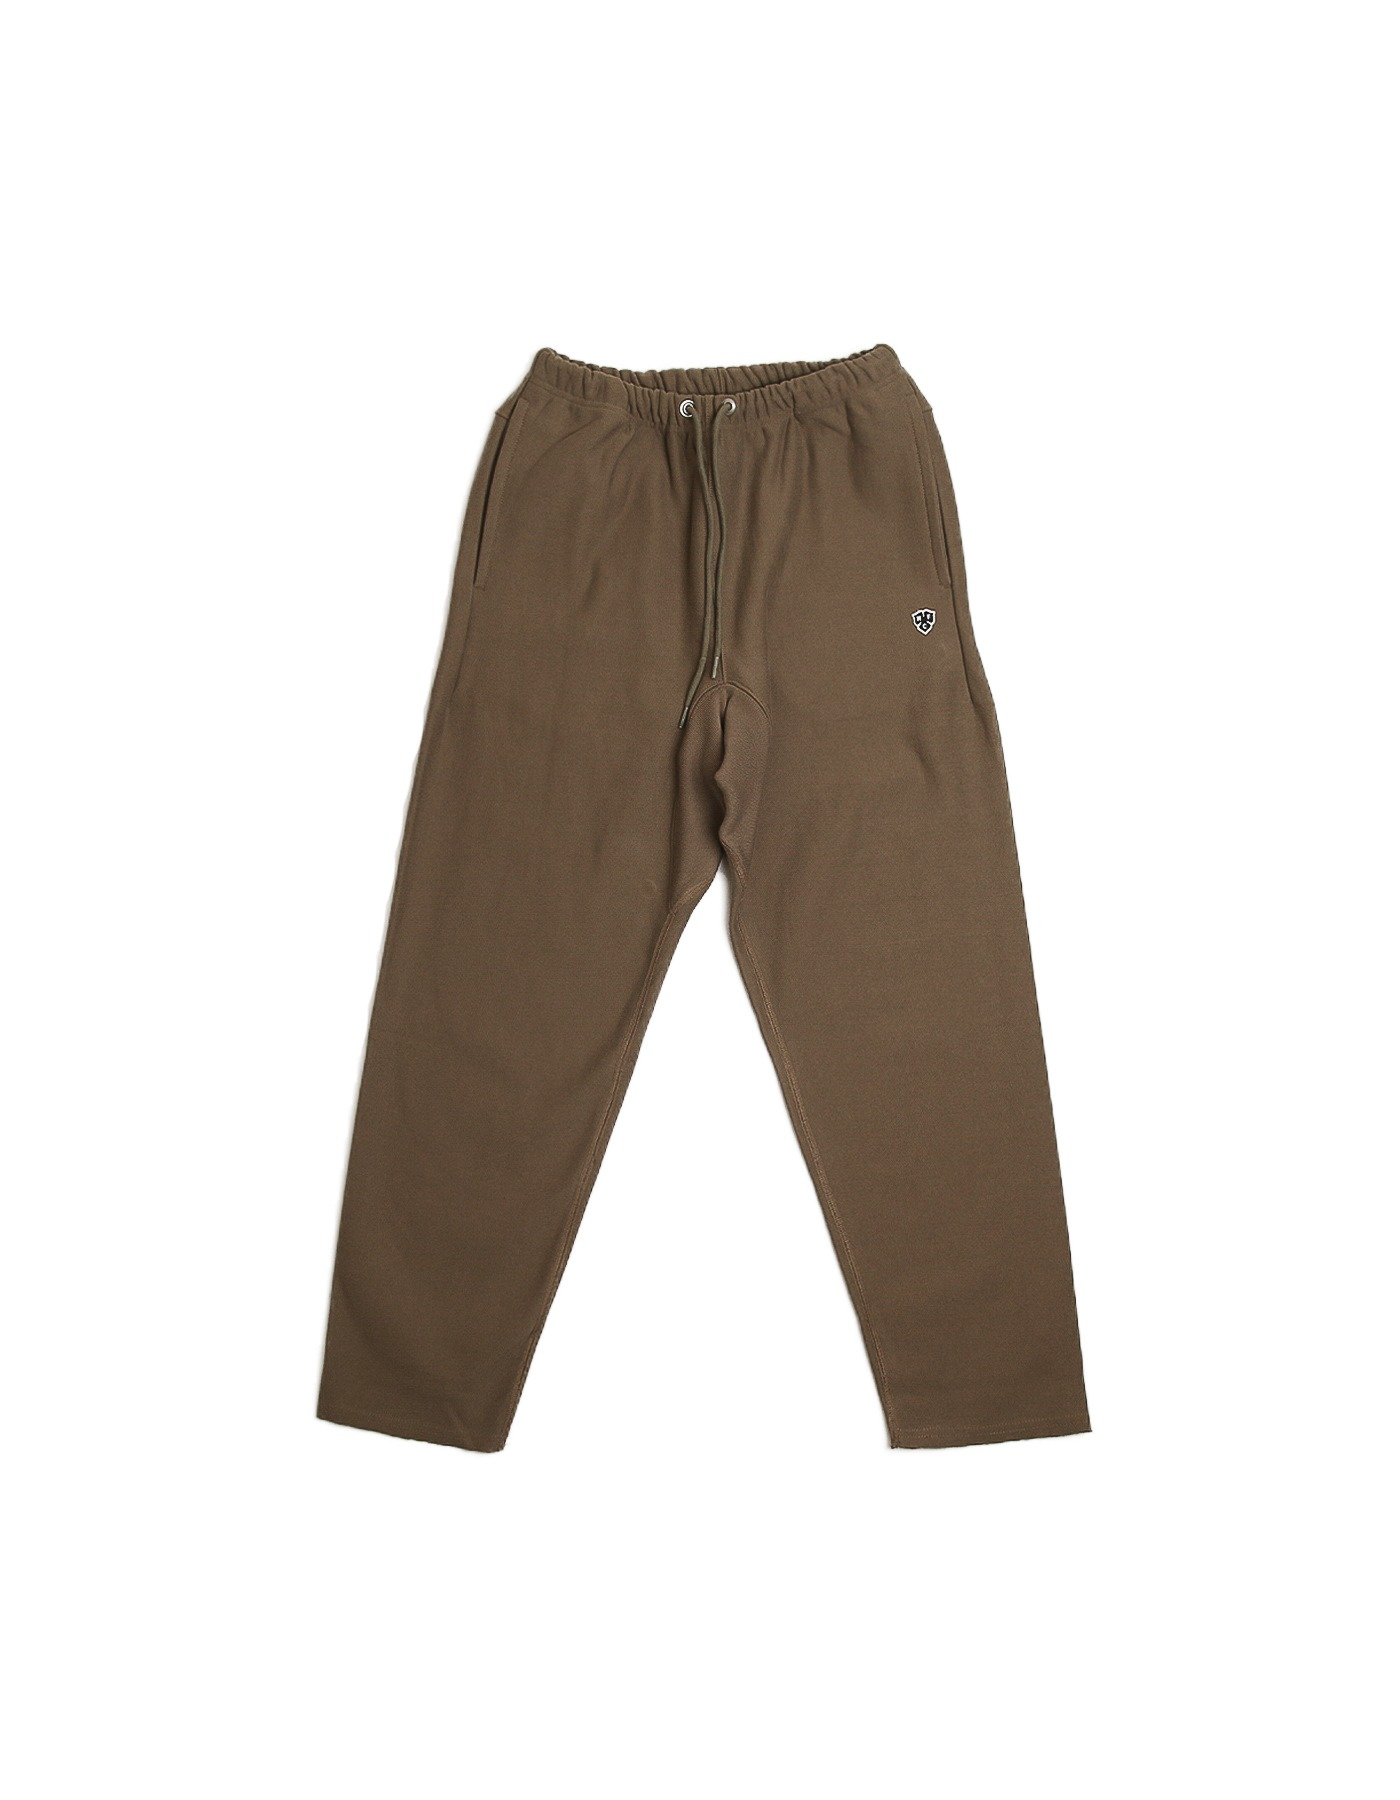 221 REVERSE RAW-CUT PANTS / DESERT KHAKI